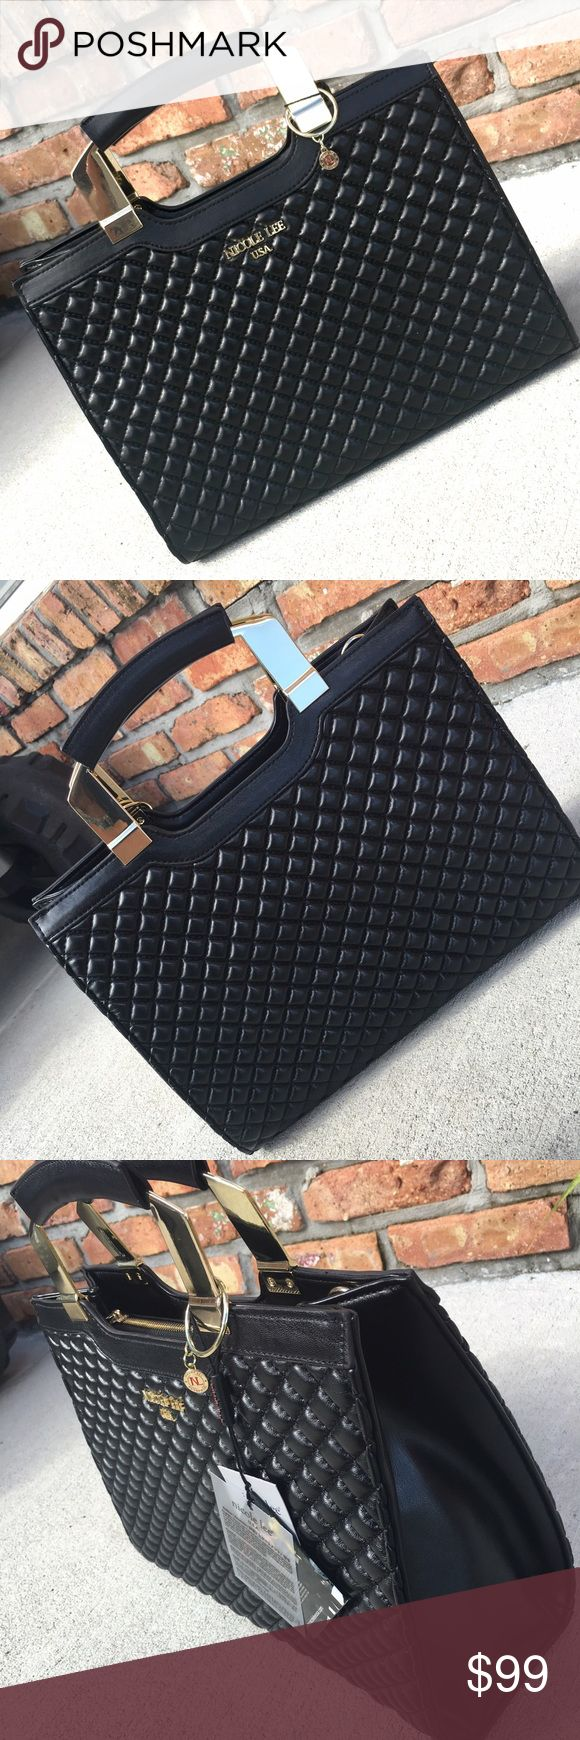 Black Nicole Lee briefcase bag Black quilted leather purse with gold details... Comes with attachable& adjustable shoulder strap... New with tags ..🚫no trades/ holds ⚠️firm on price unless bundling..also available in white & tan Nicole Lee Bags Totes